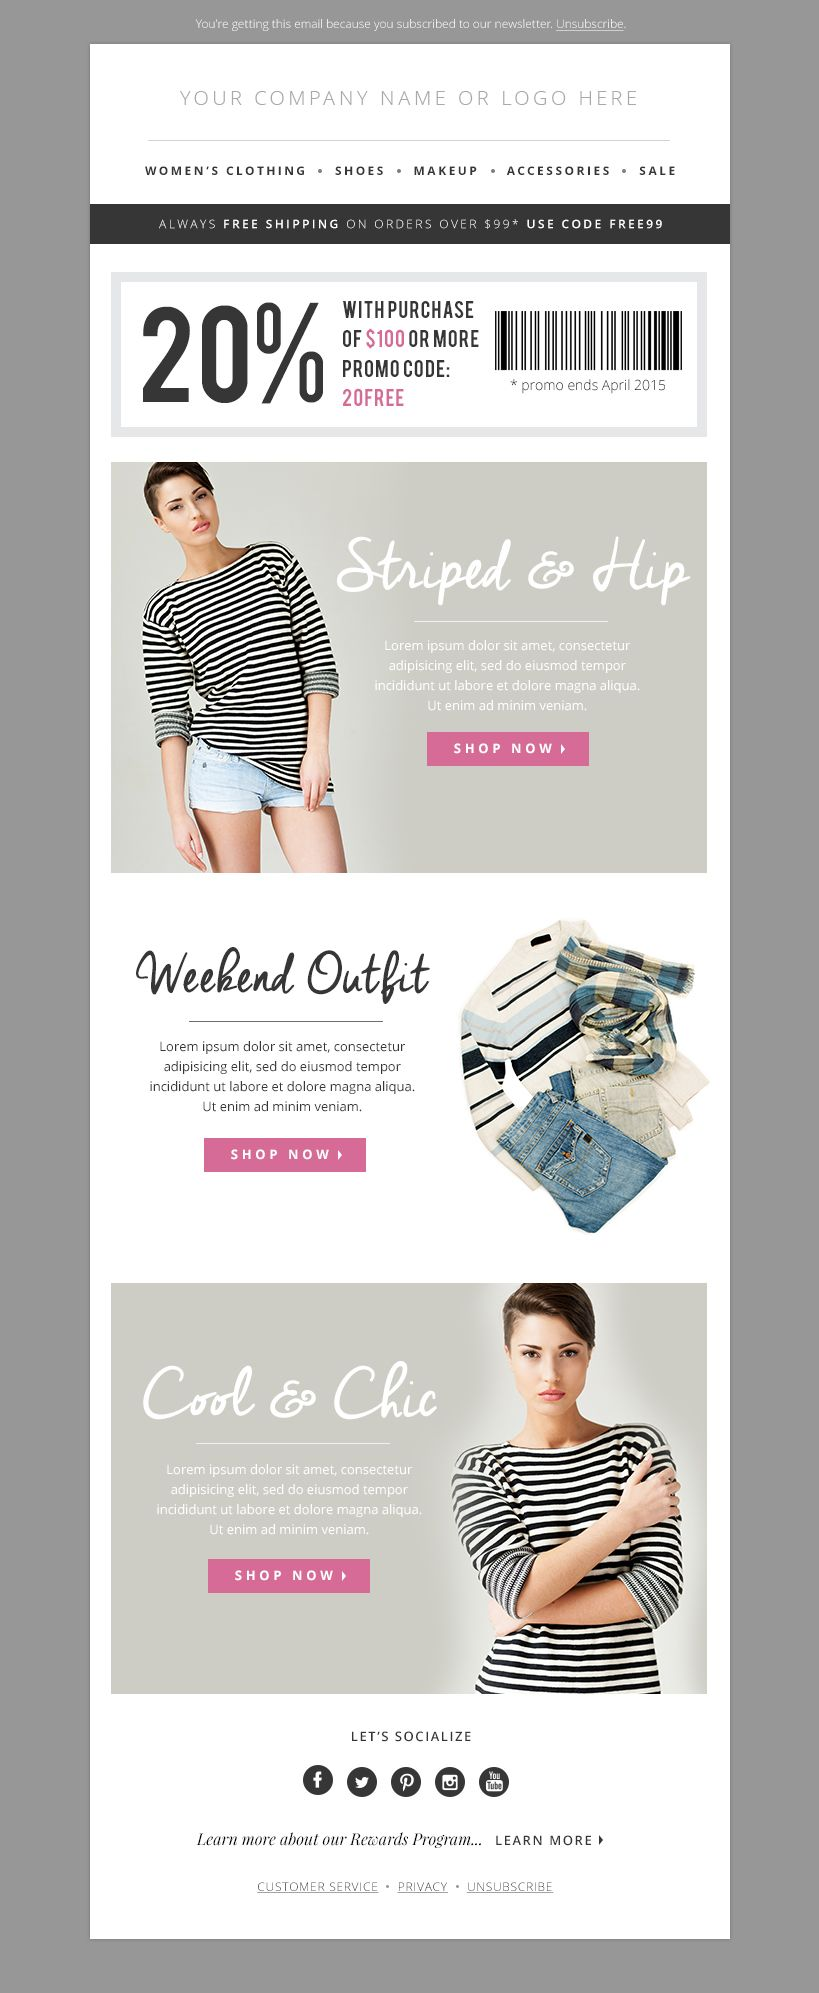 Pin by Artist\' Ratchanon on Web Banner | Pinterest | Template ...